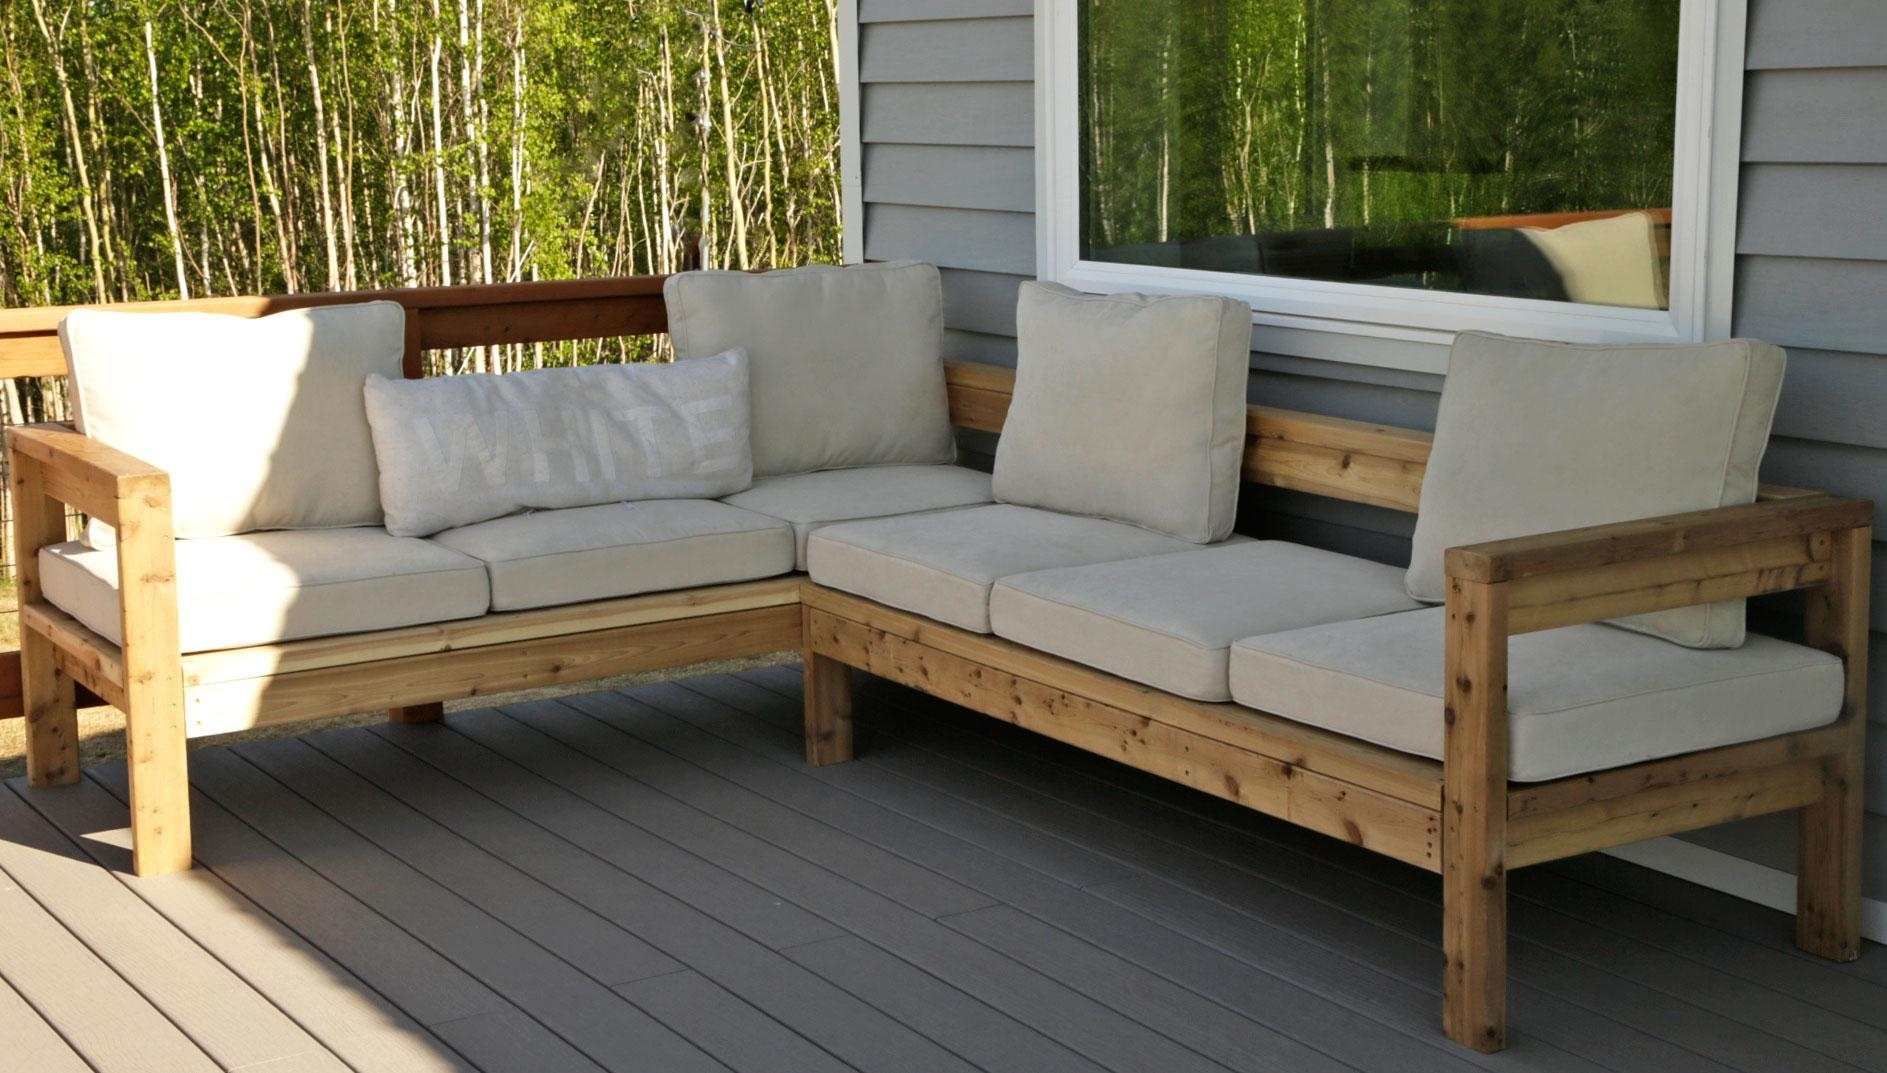 Ryobi Nation With Regard To Ana White Outdoor Sofas (Image 20 of 20)